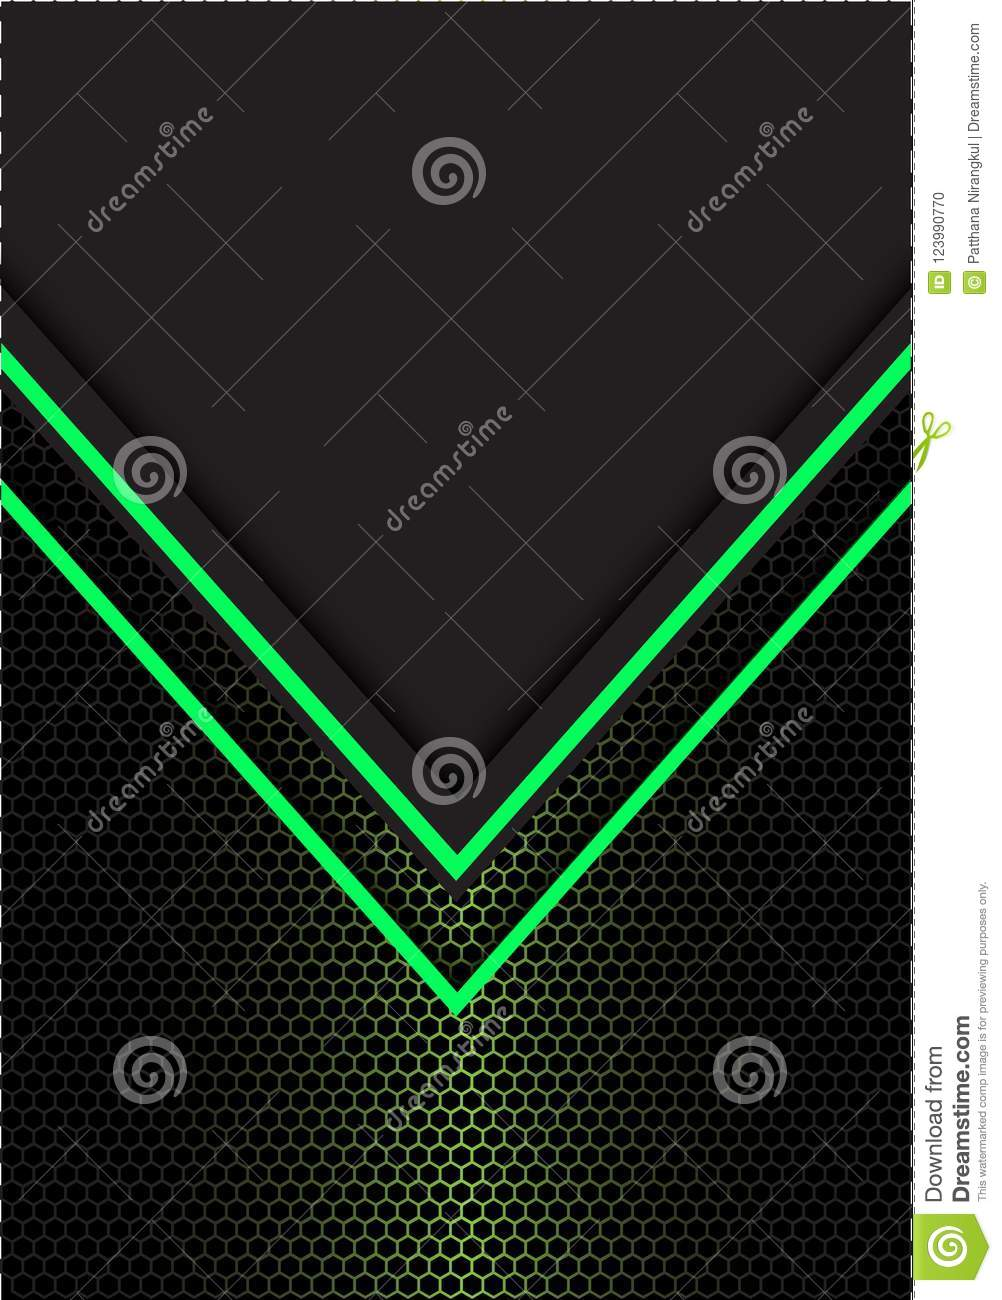 Abstract green arrow light direction hexagon mesh with dark gray blank space design modern futuristic background vector